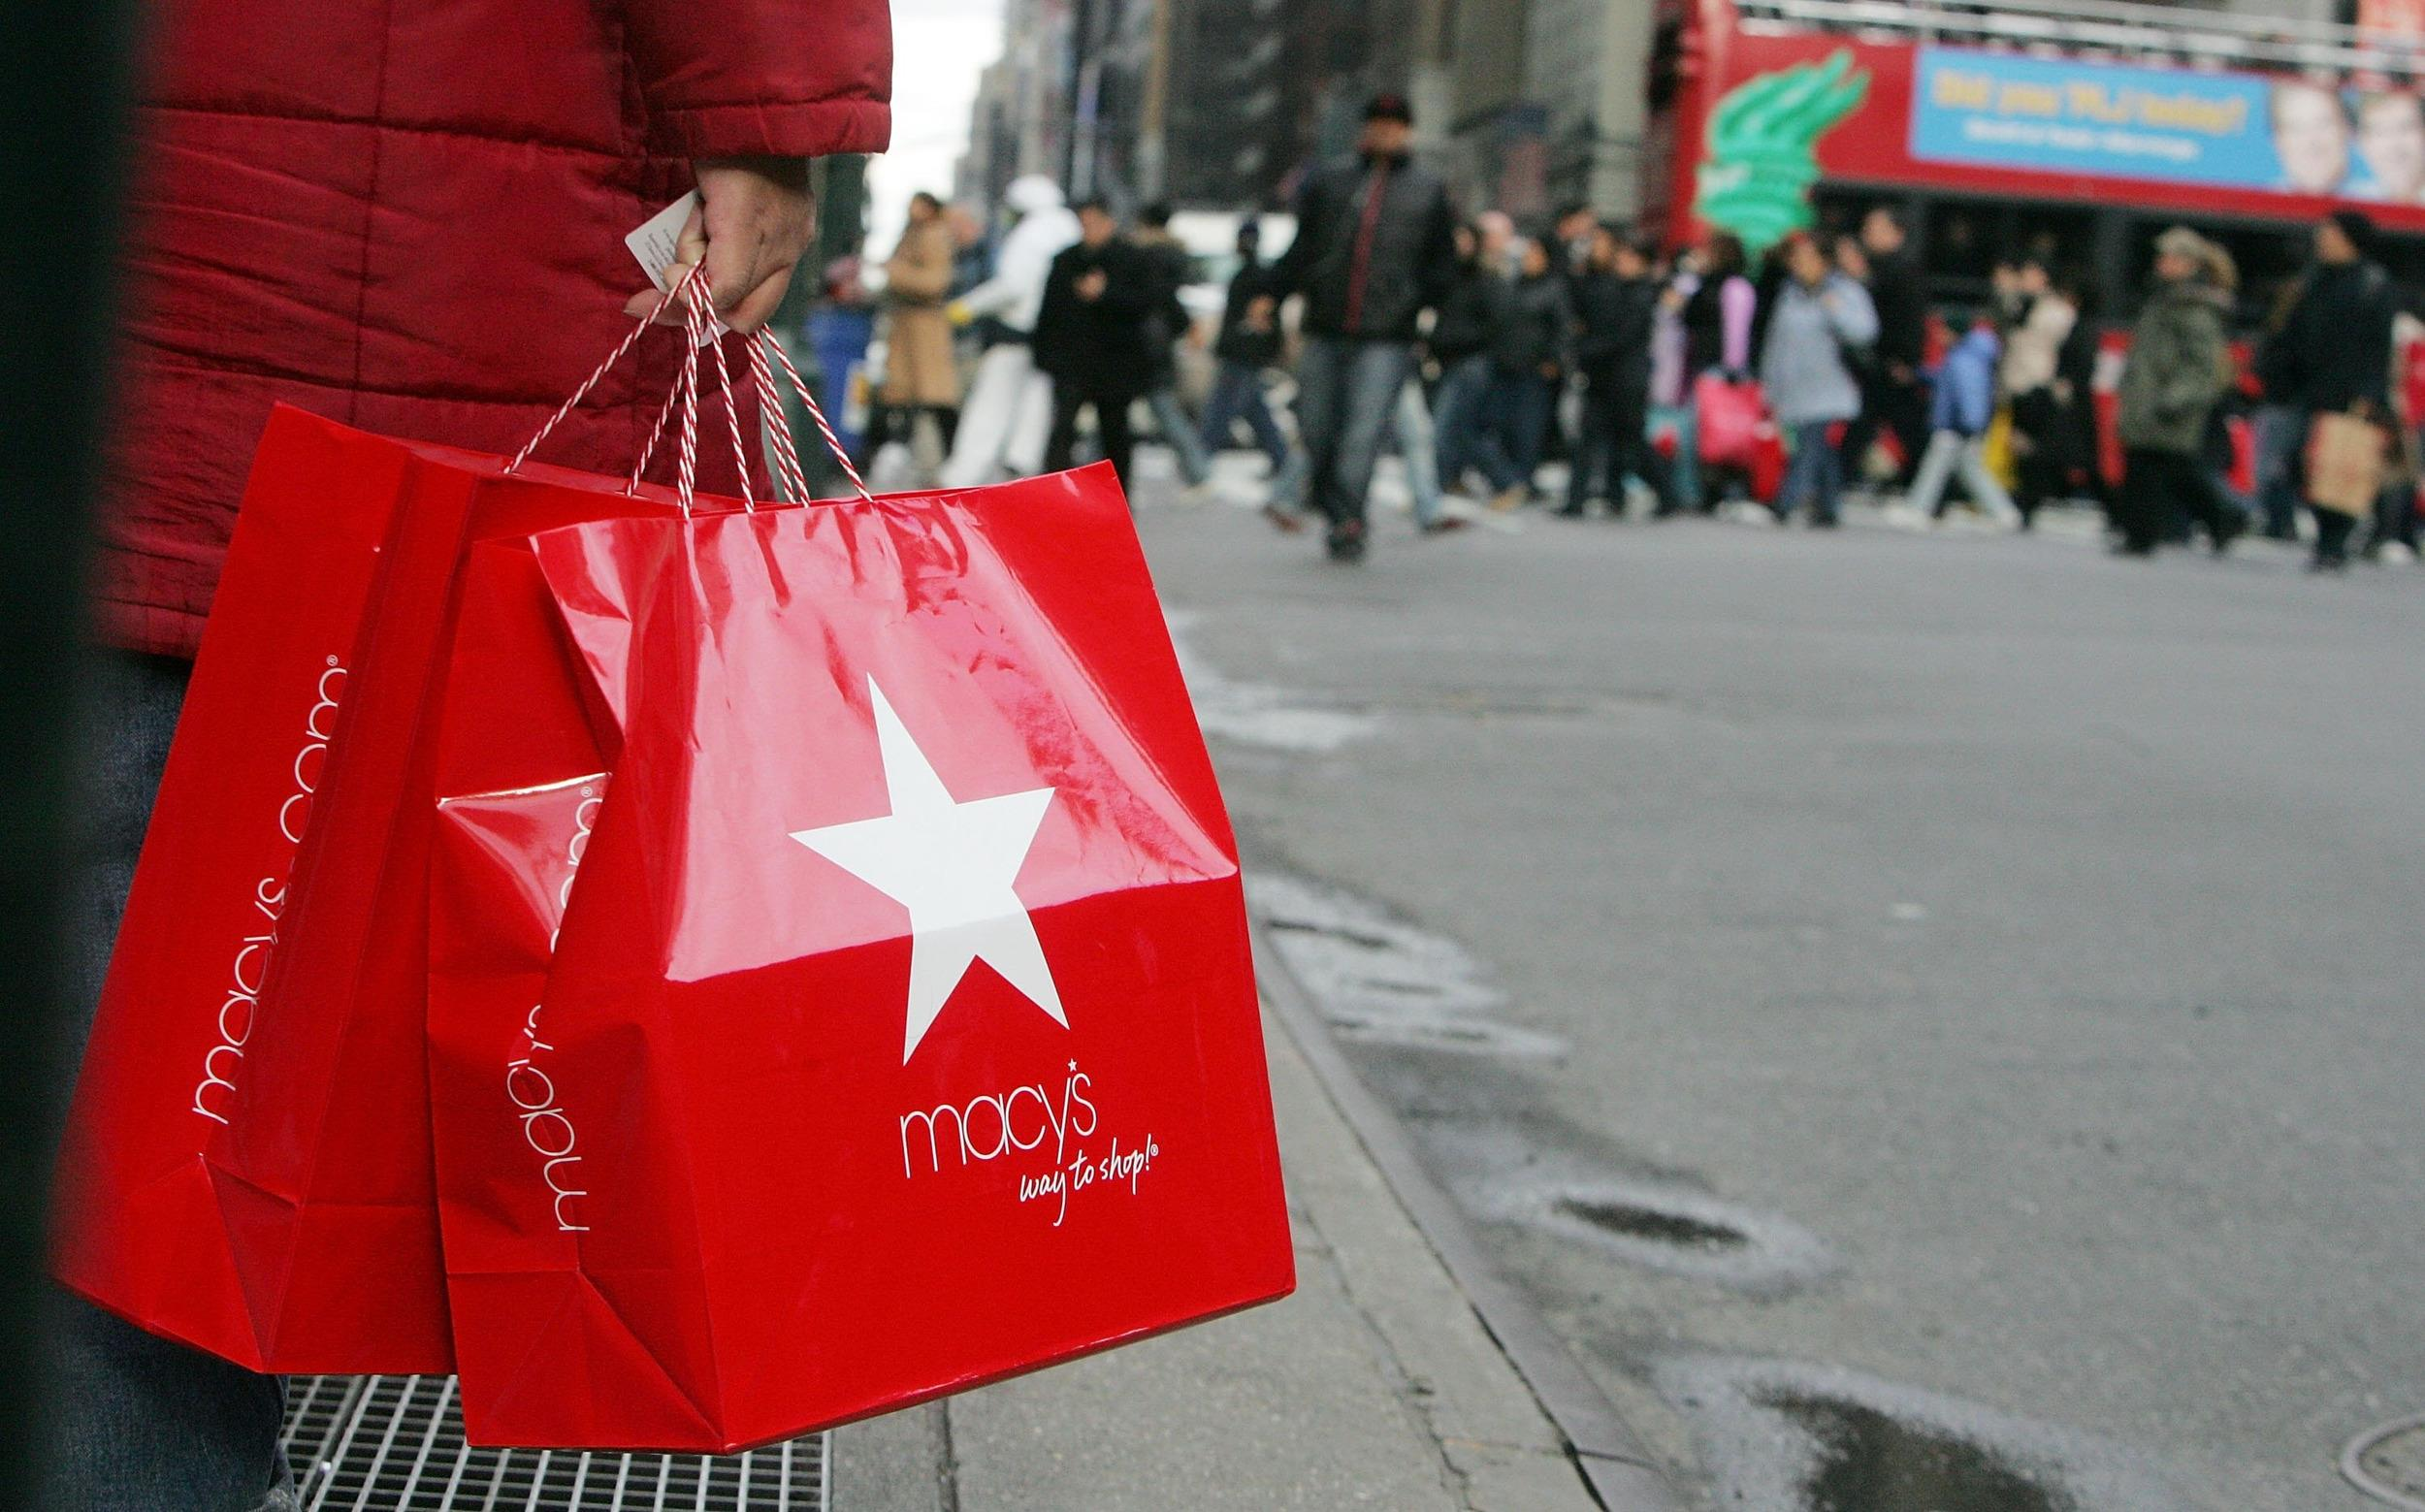 Macy's has agreed to pay $650,000 to settle allegations of racial profiling at its flagship store in Manhattan's Herald Square.